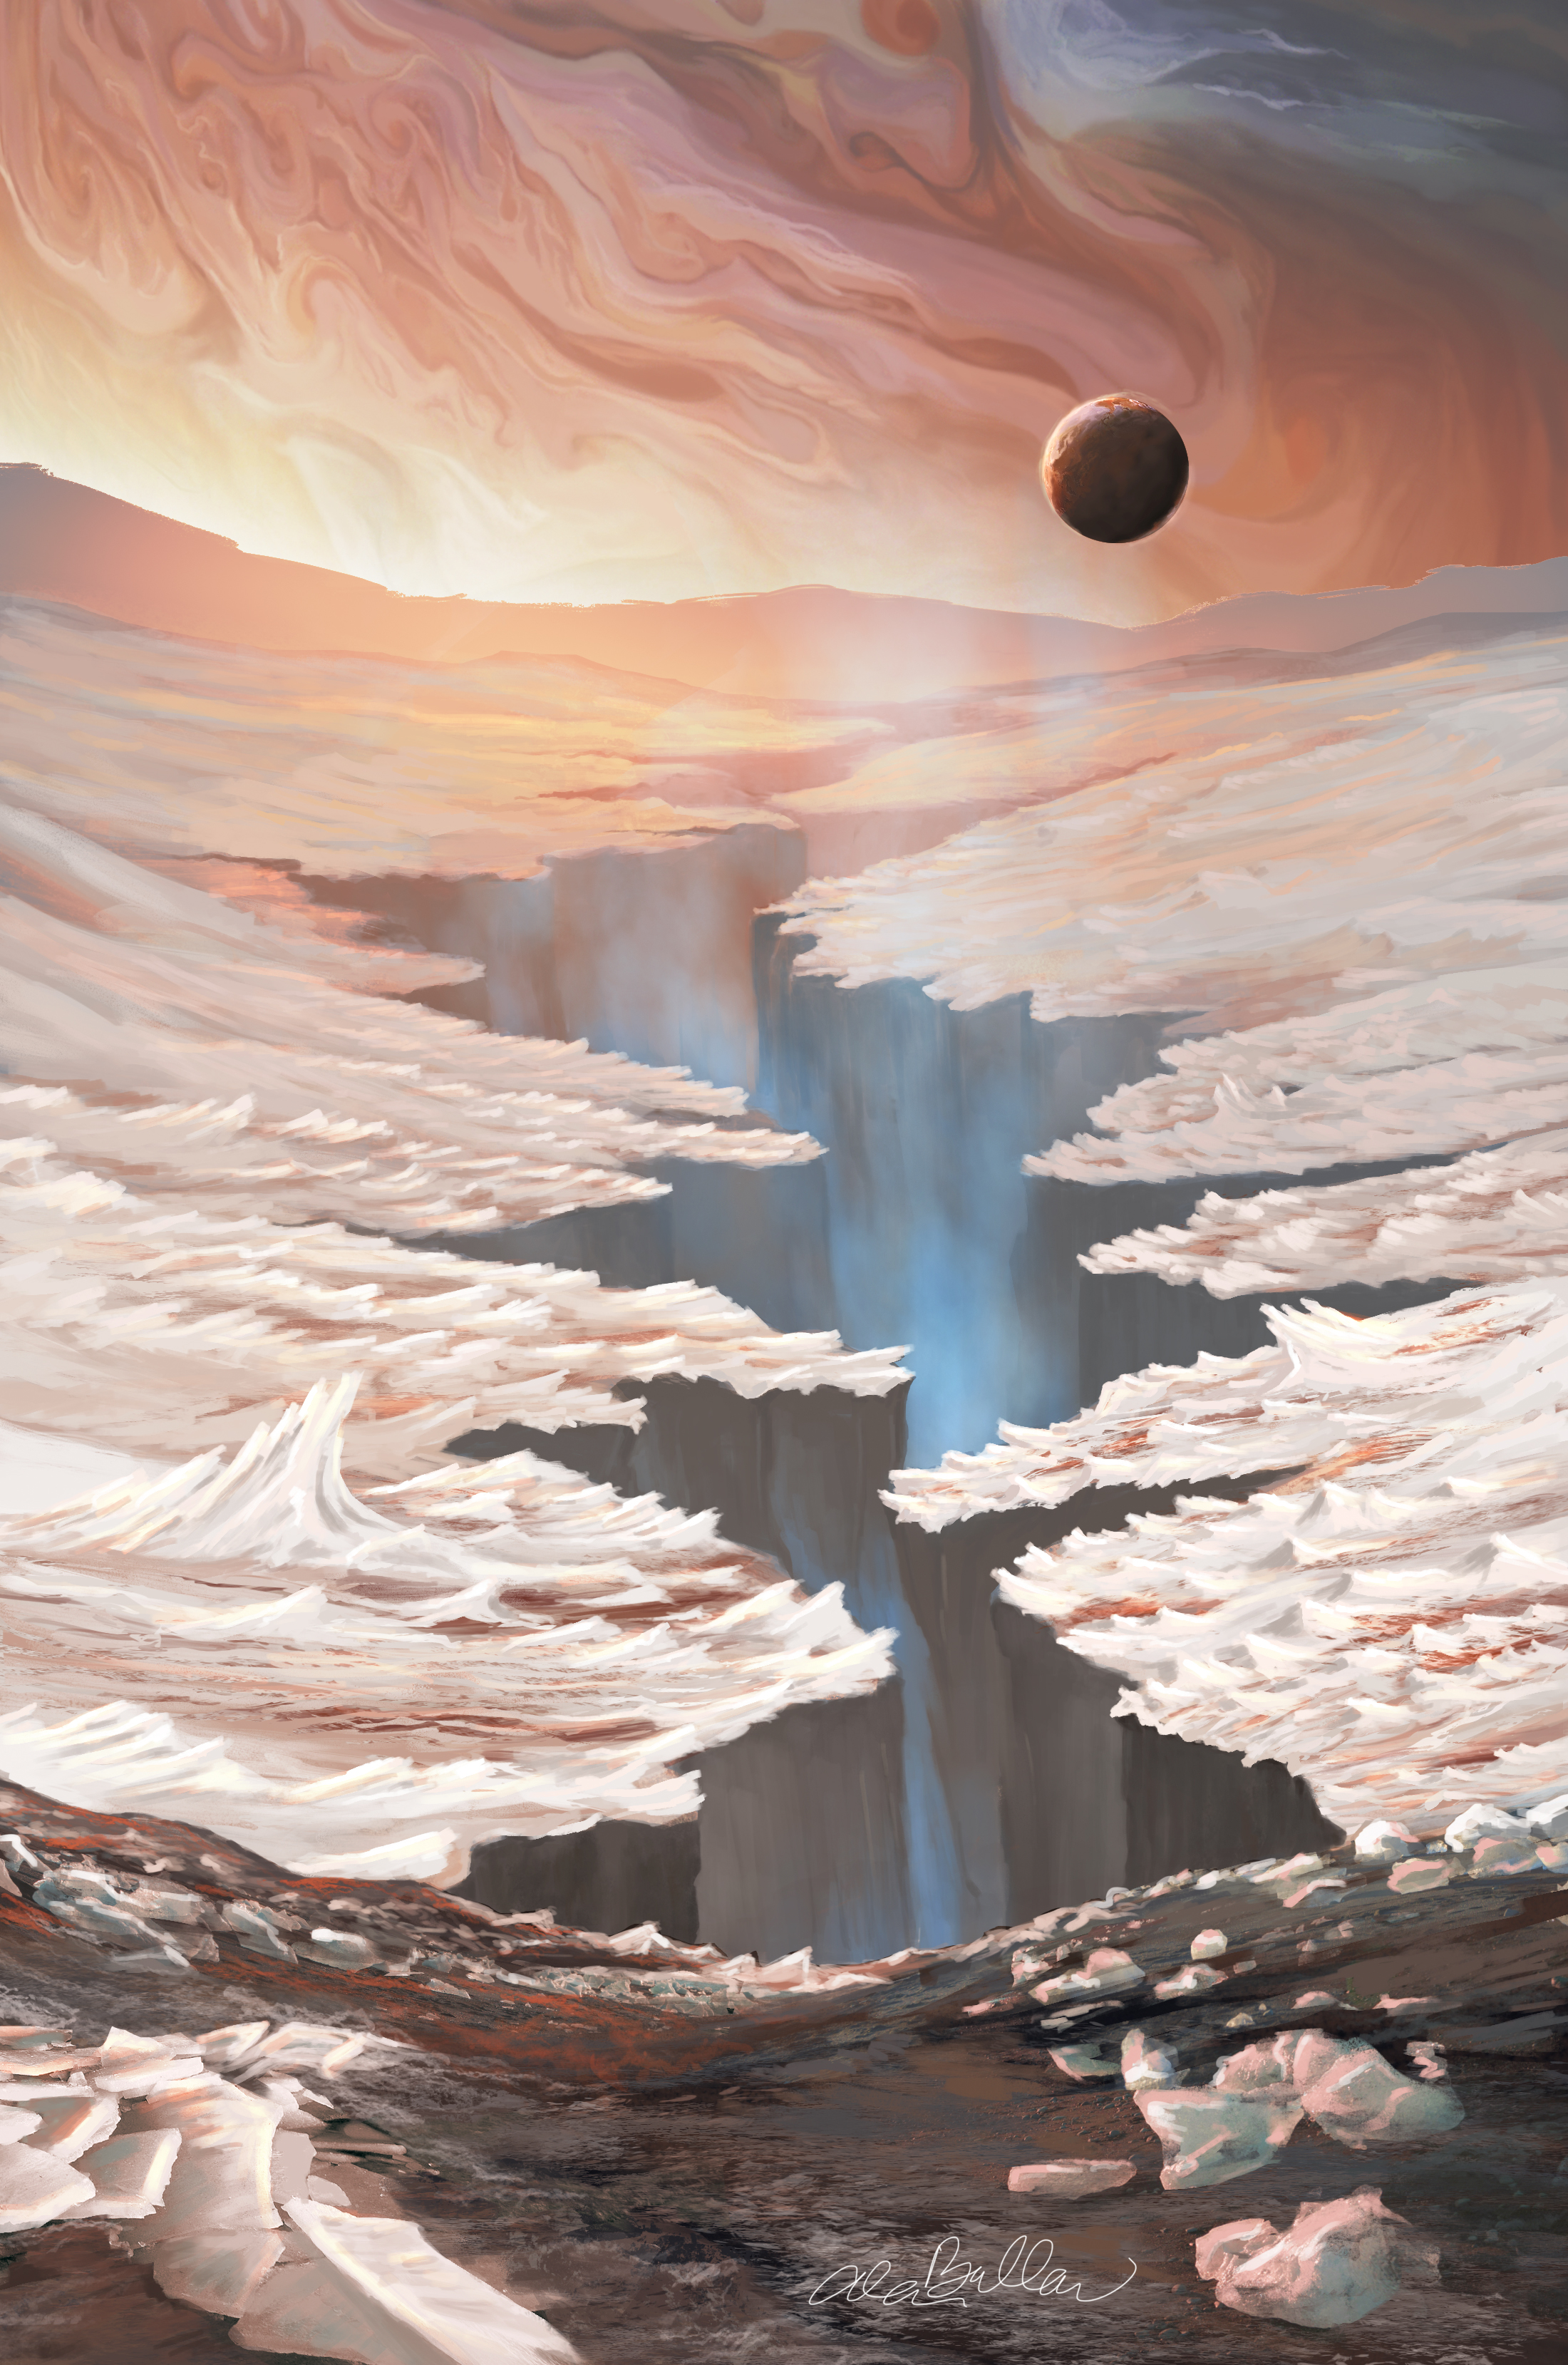 A Vision from Europa